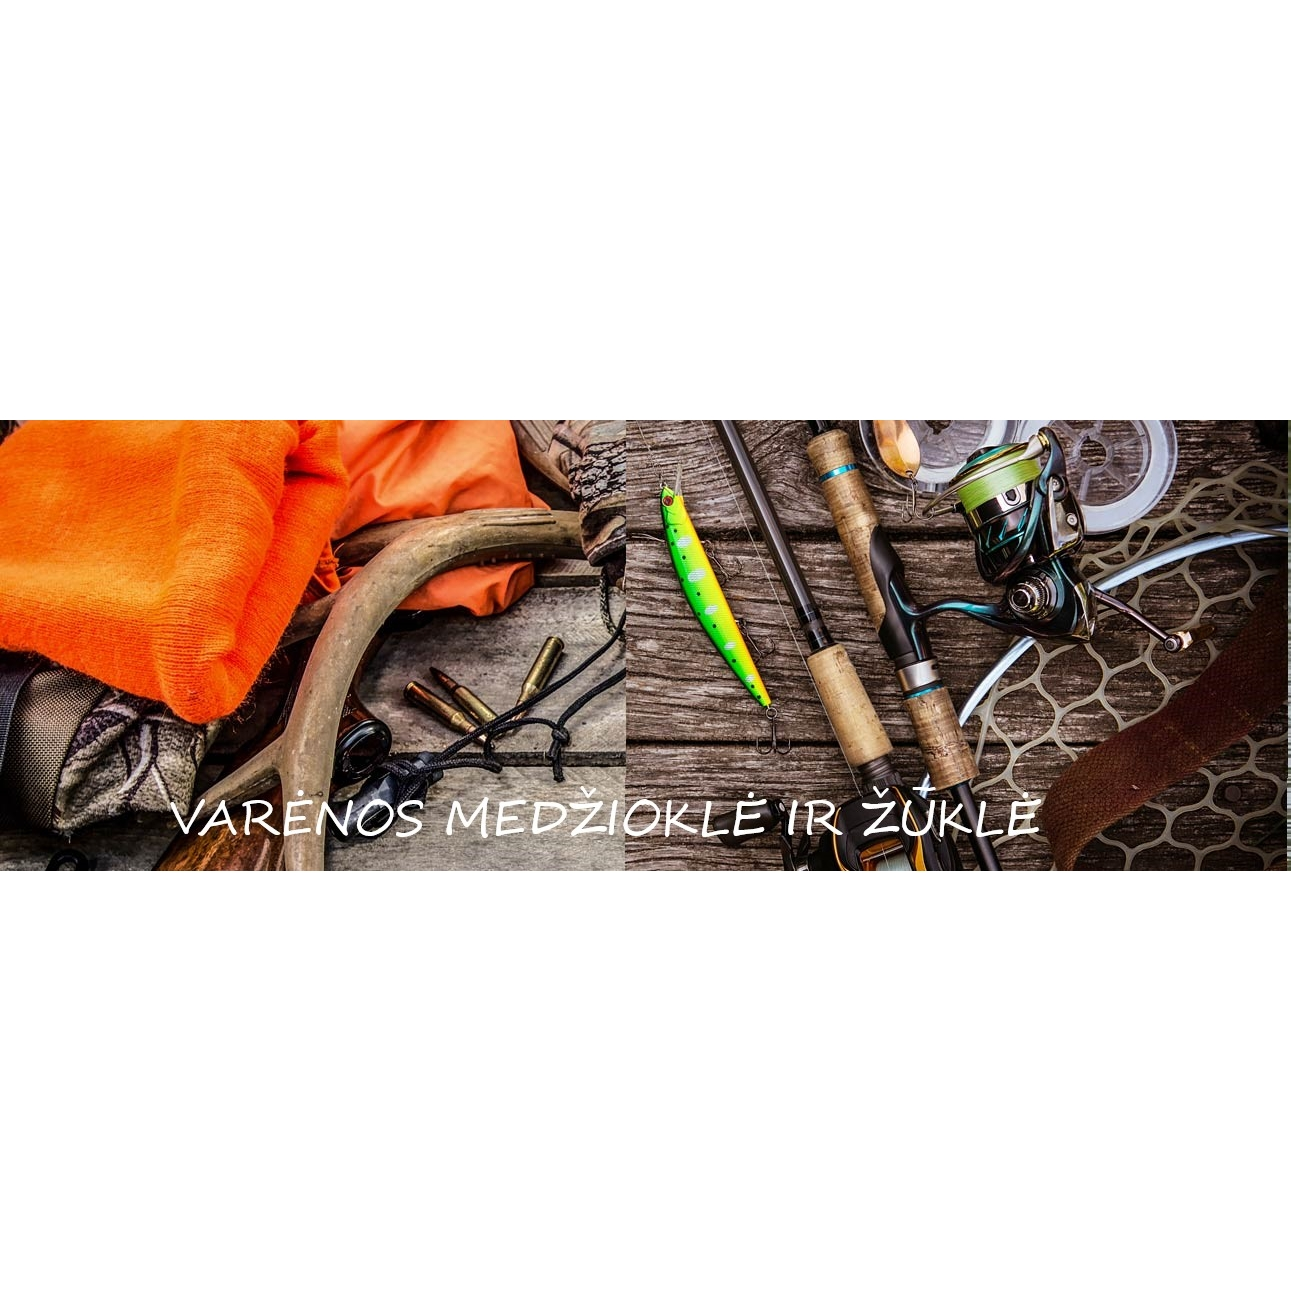 hu/hunting-fishing-licenses-banner-1-1.jpg